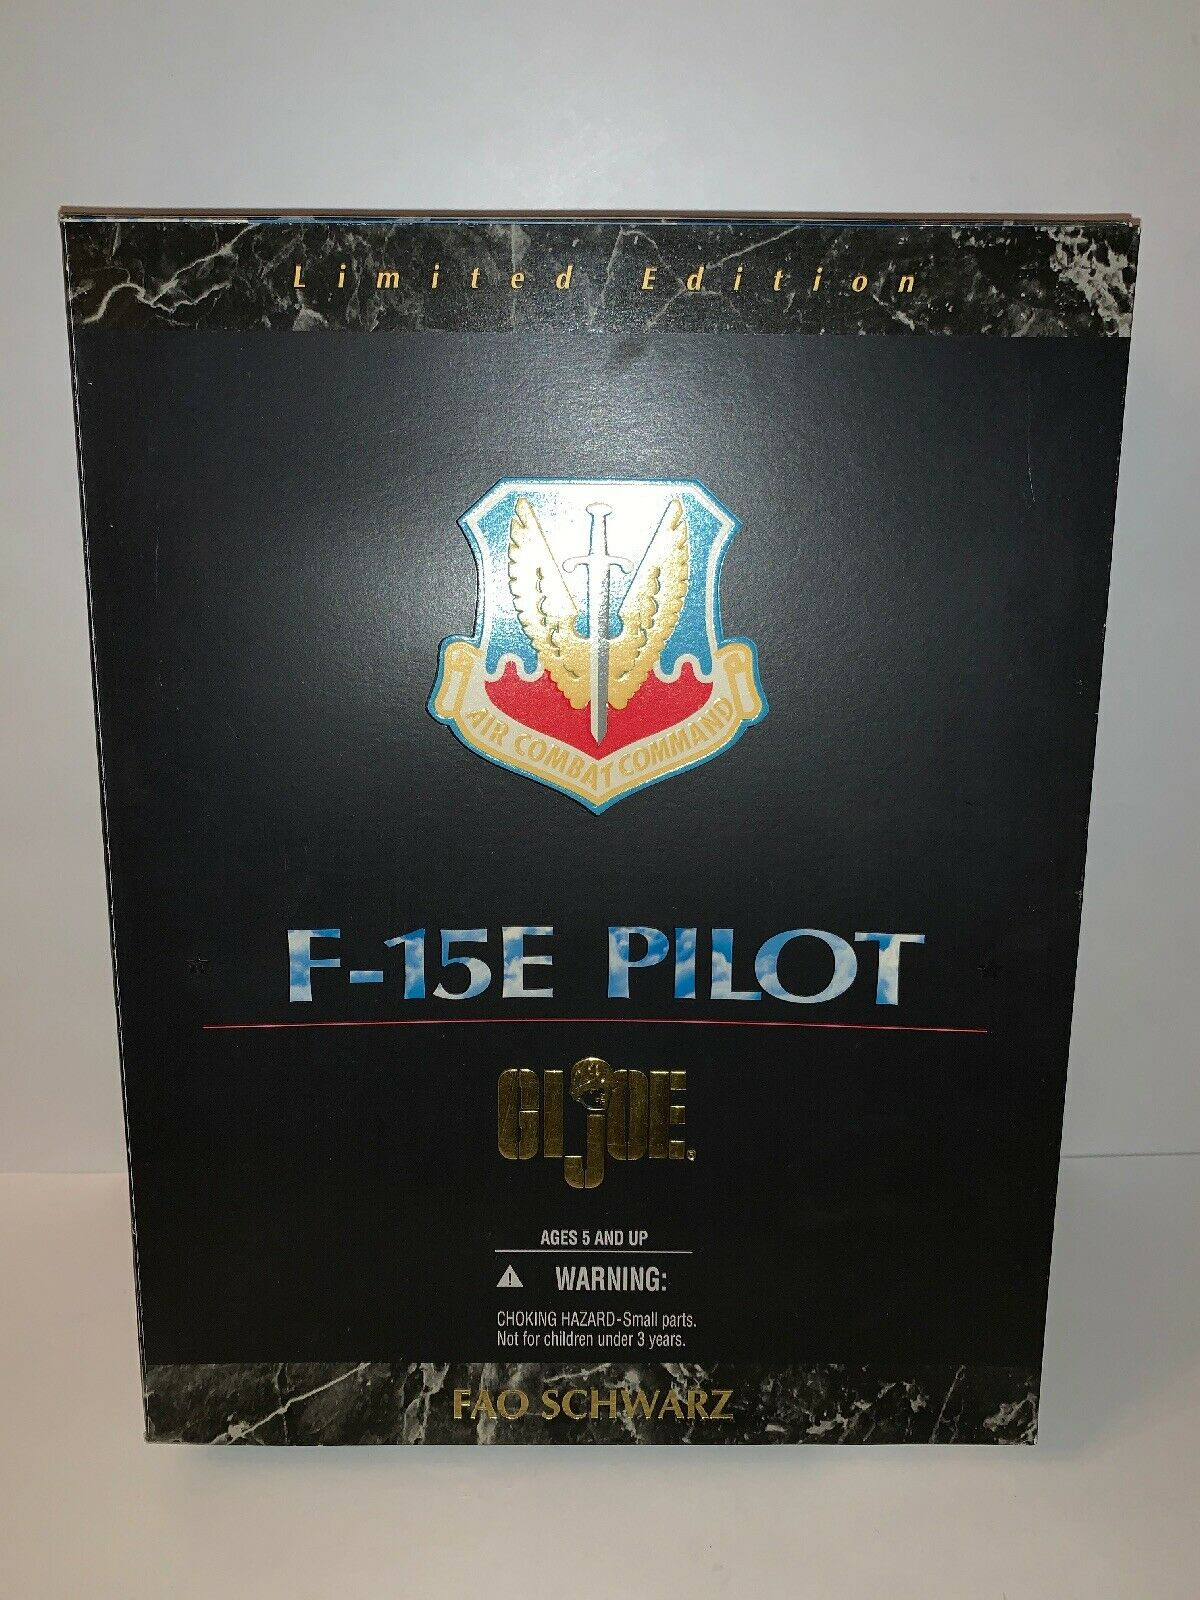 1996 Hasbro Hasbro Hasbro Gi Joe 12  Action Figure F-15E Pilot Limited Edition, MISB, (B70) a05ce6